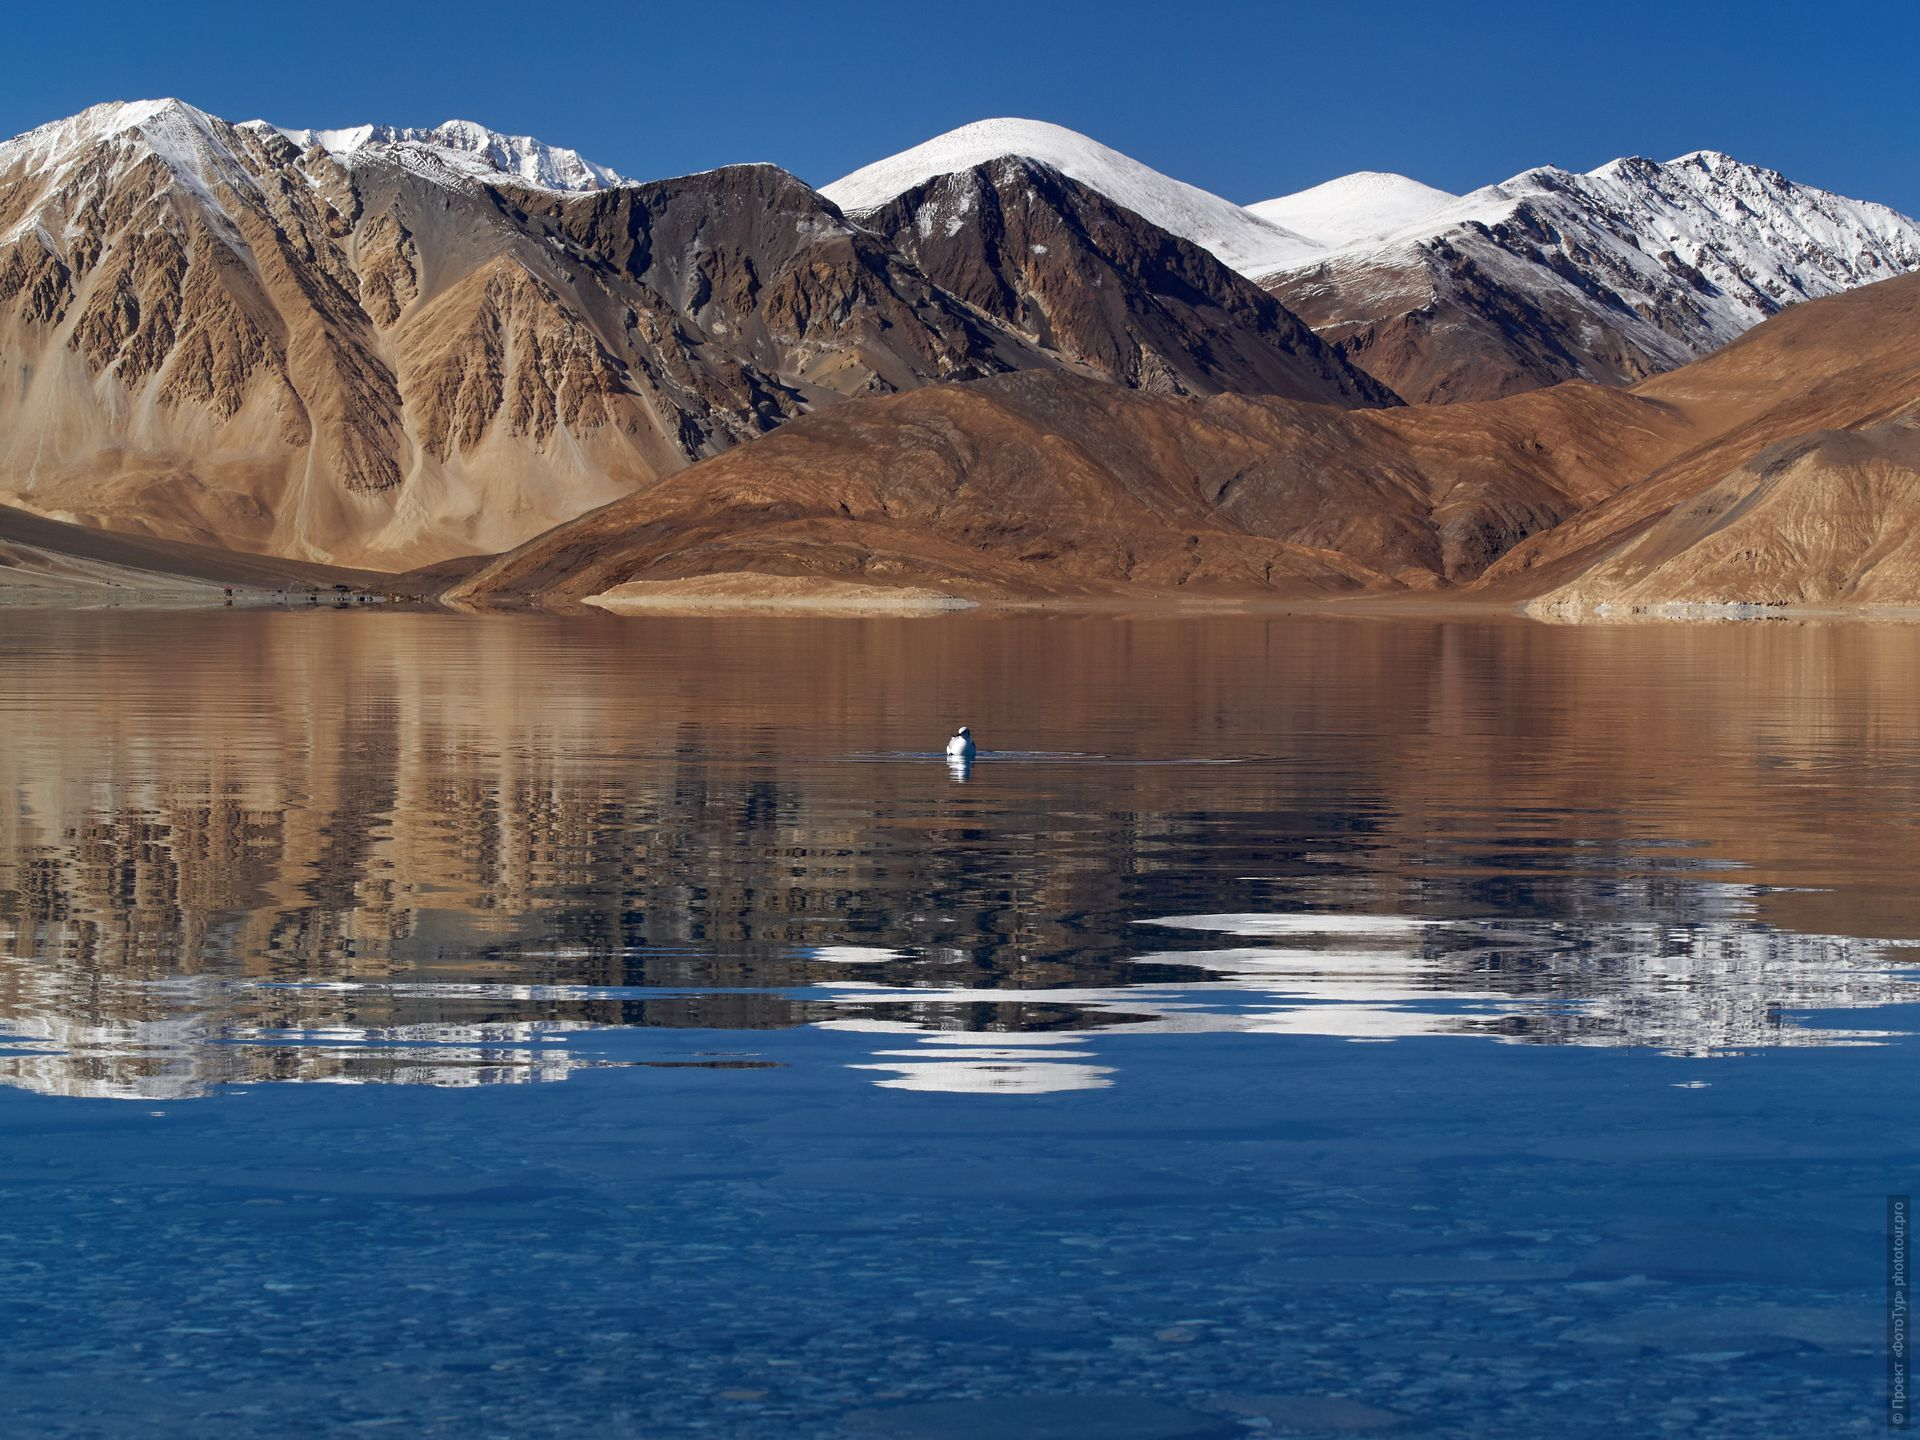 Alpine lake Pangong. Photo tour / tour Tibet of Lake-1: Pangong, Tso Moriri, Tso Kar, Tso Chiagar, Dance of Tsam on Lake Pangong, 19.06. - 28.06.2021.